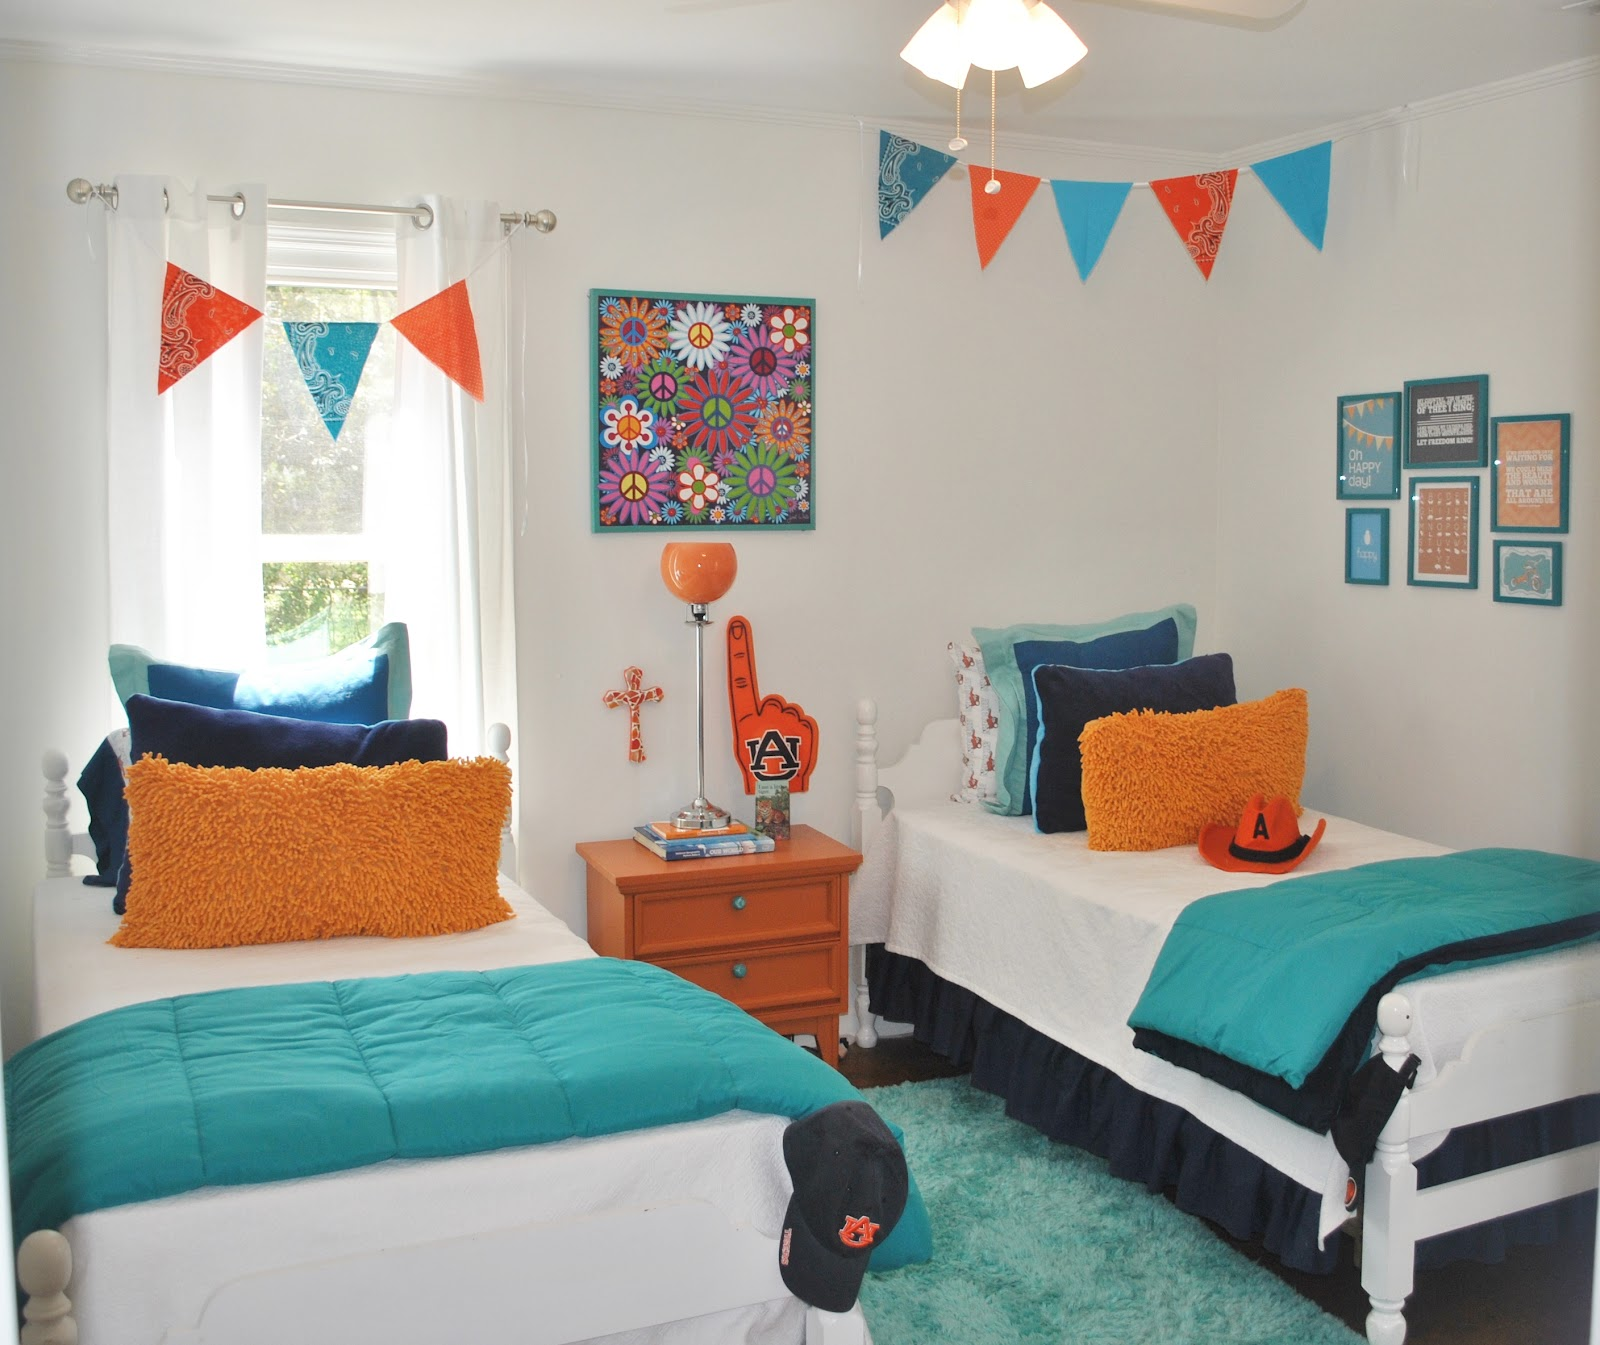 House tour orange blue on drake home stories a to z for Blue and orange room